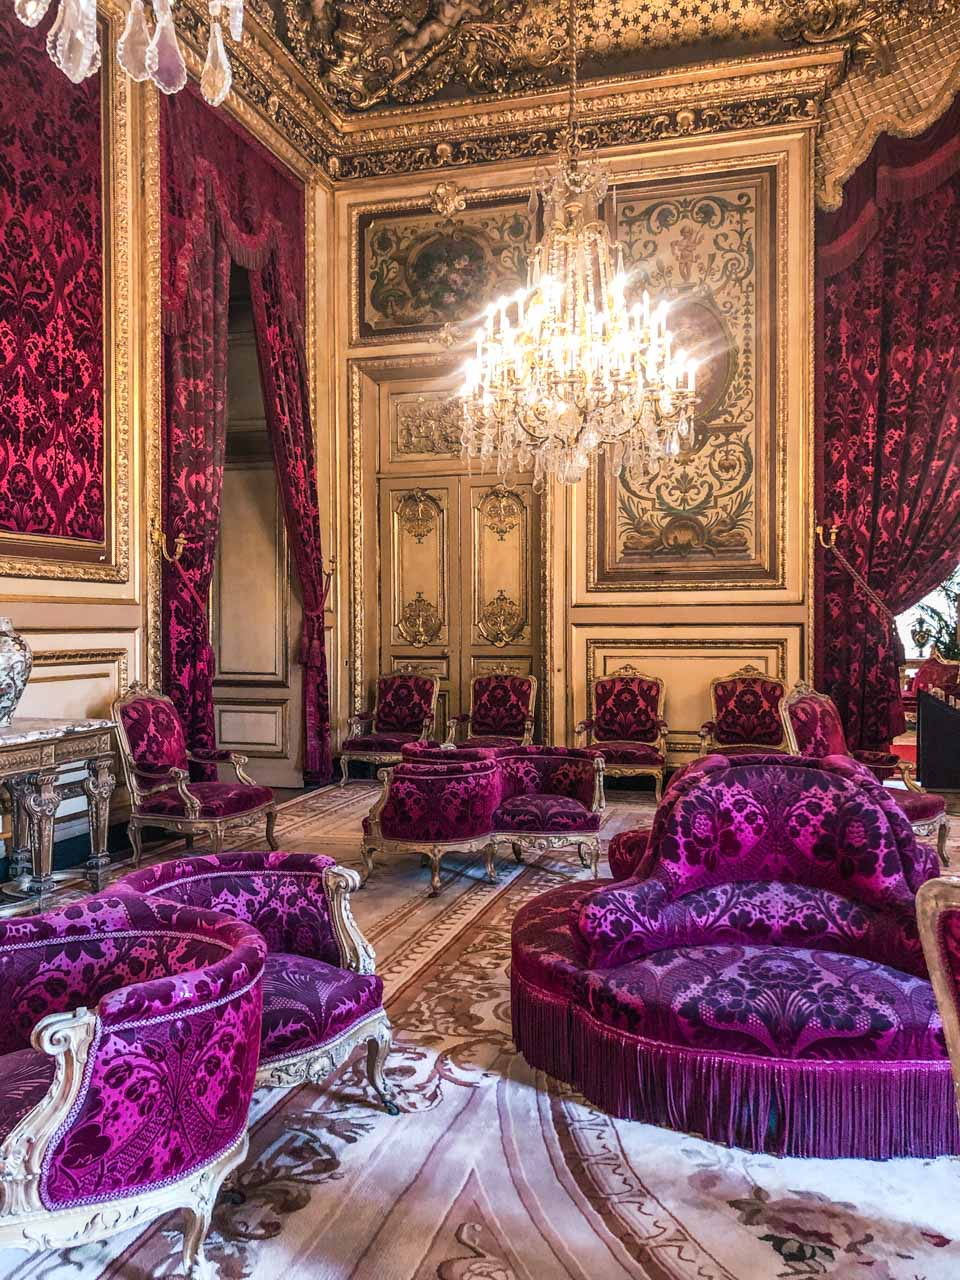 A room filled with velvet fixtures and curtains, gold edgings, red upholstered royal furniture and golden glimmering chandeliers in the Napoleon III Apartments located in the Richelieu Wing in the Louvre Museum in Paris, France